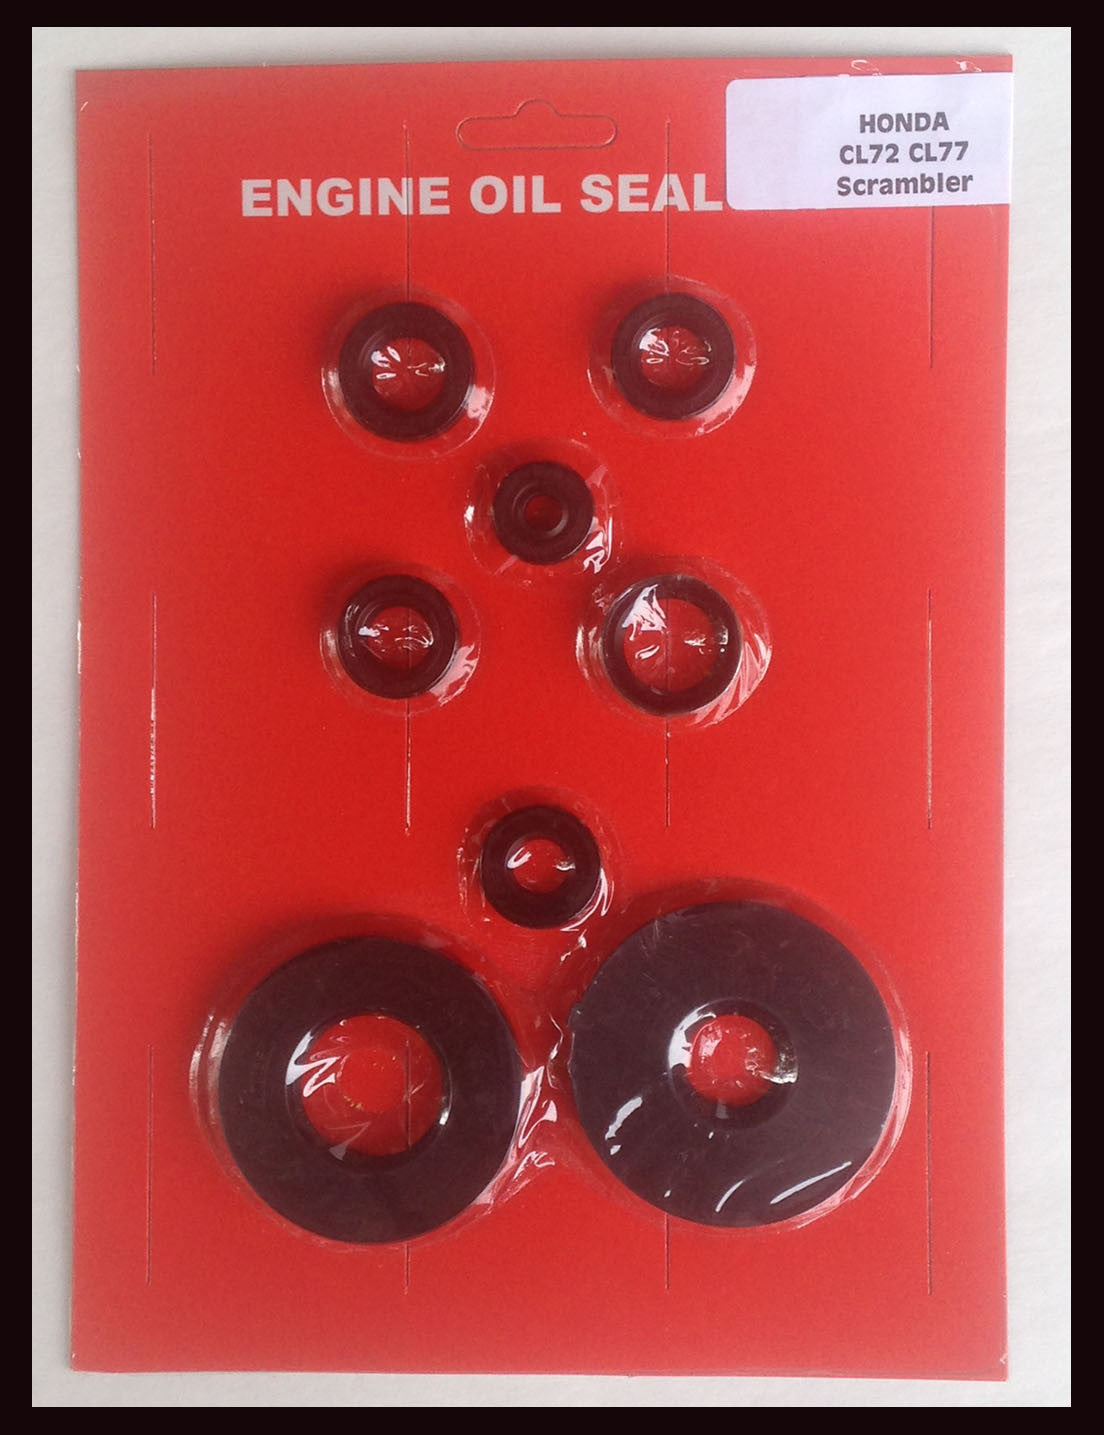 Honda CL72 250 CL77 305 Scrambler Complete Engine Oil Seal Kit